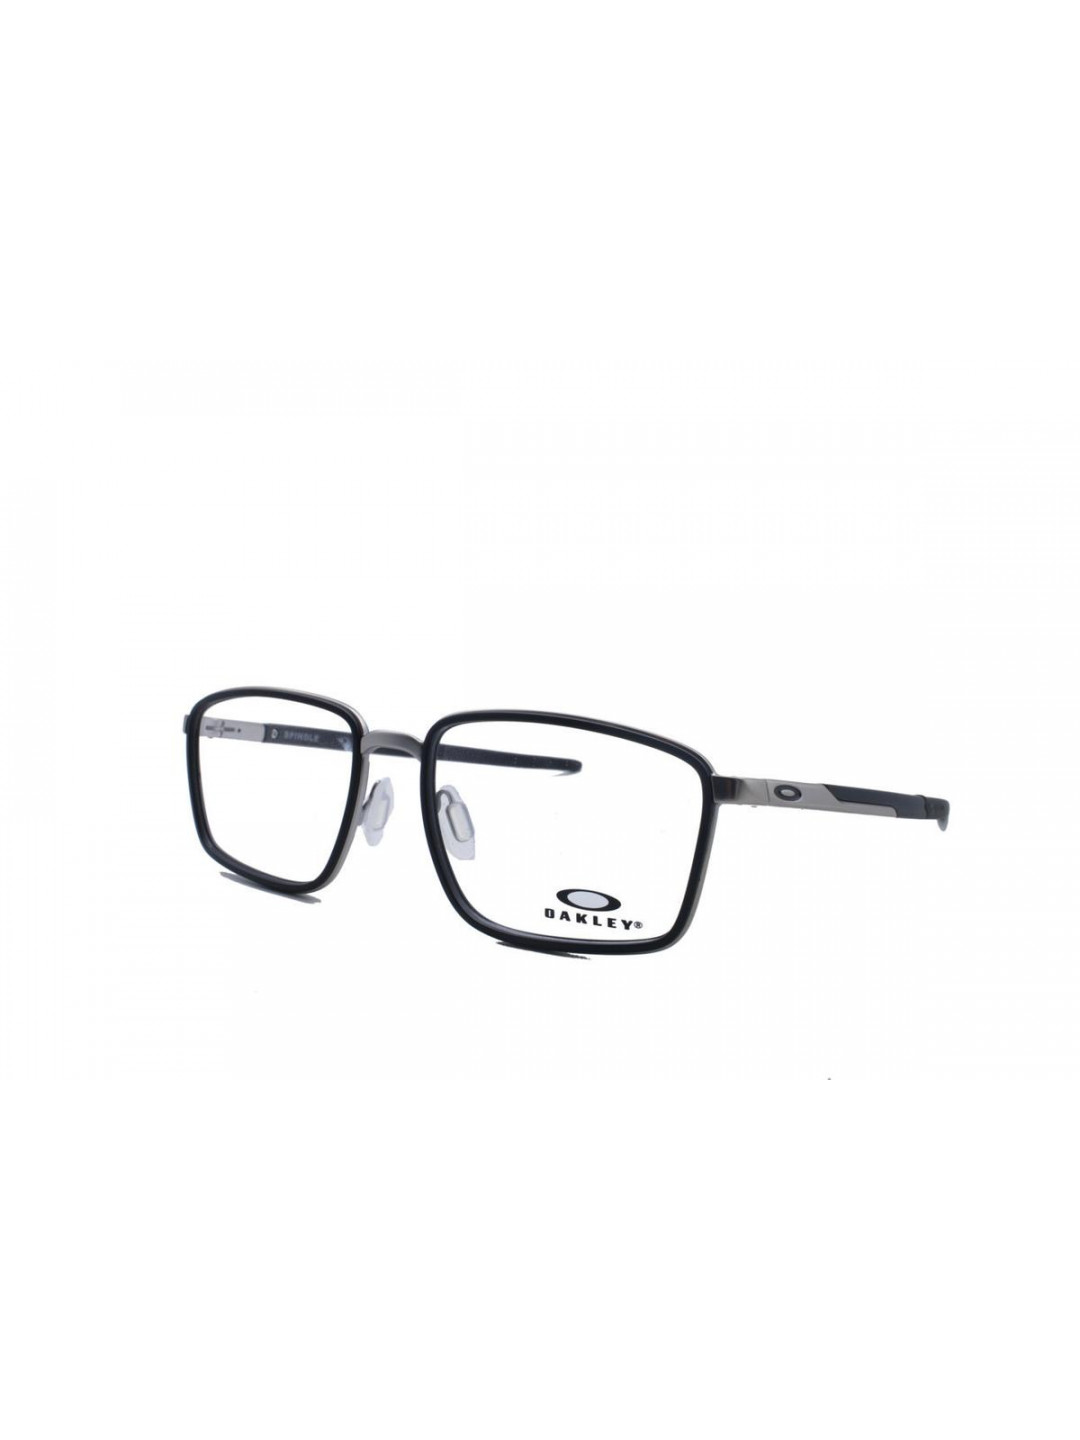 Oakley OA 3235 0154 Rectangle Black Full Frame With Stainless Steel